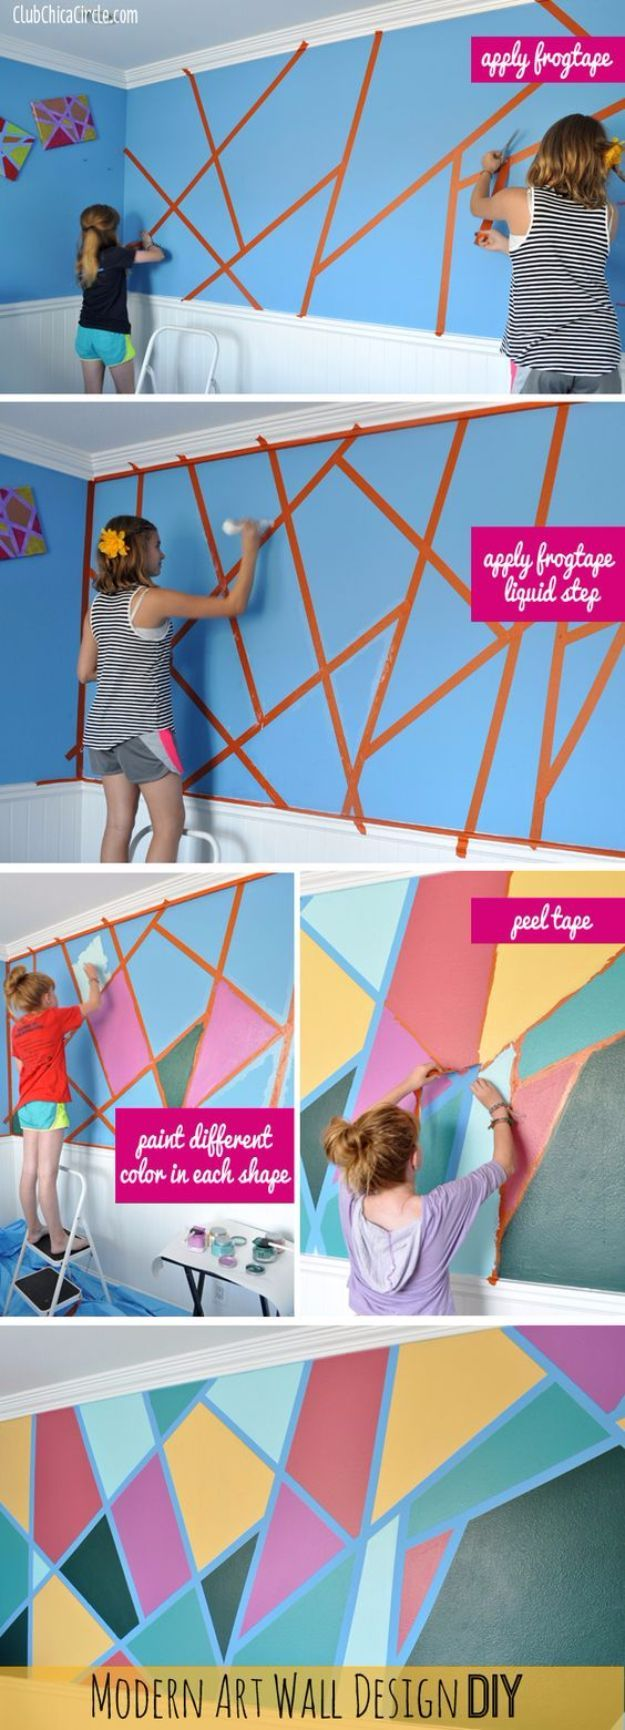 Painted Wall Designs Best 25 Painting Walls Ideas Only On Pinterest How To Paint